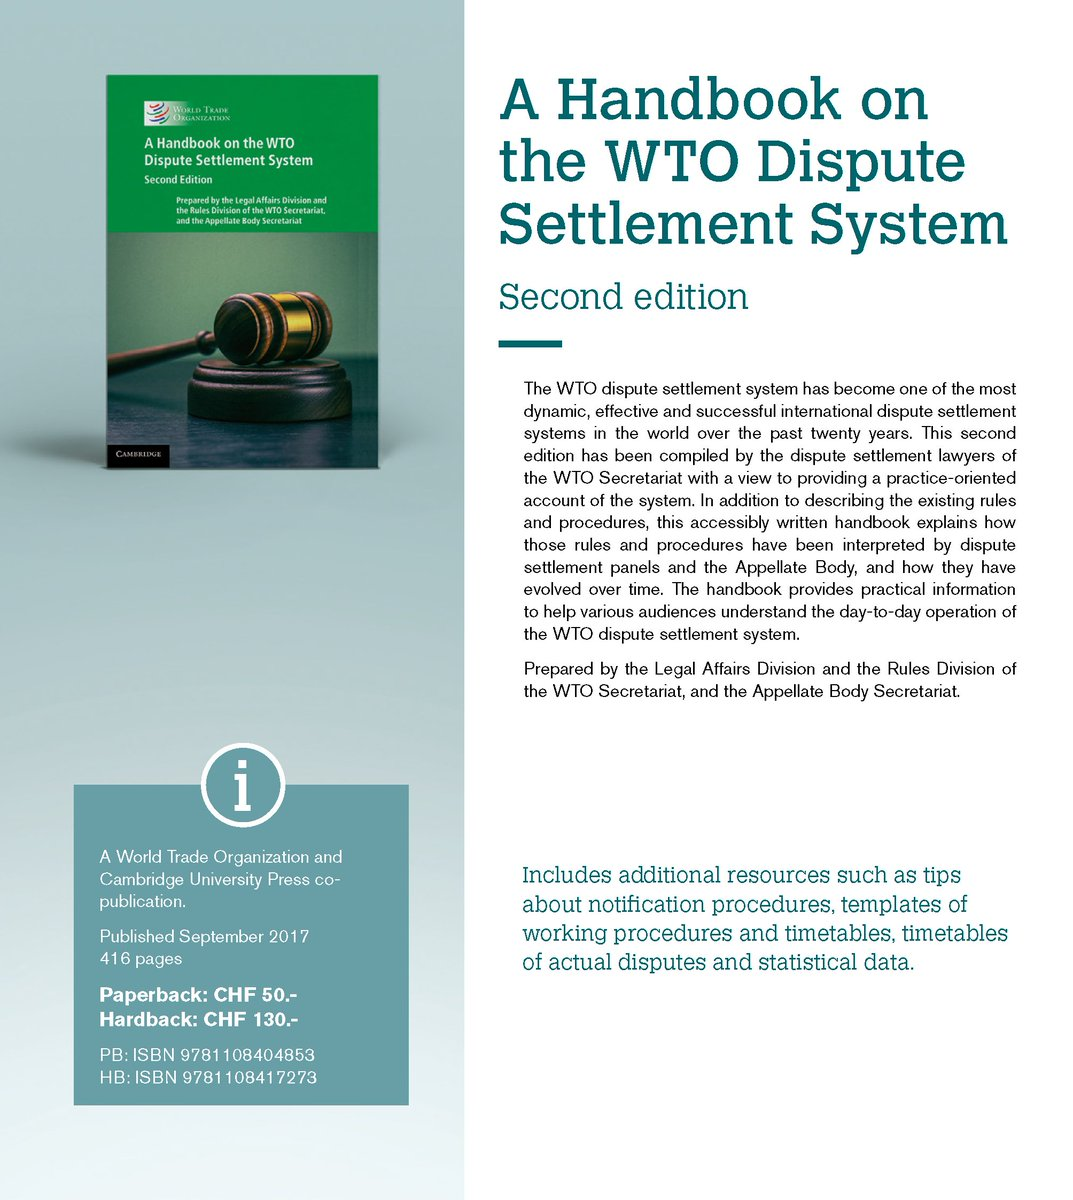 exam law of the wto This memorandum offers an analysis of transparency and public participation in the dispute settlement system of the world trade organization (wto) with specific regard to current practice and the on-going review of the dispute settlement understanding (dsu.